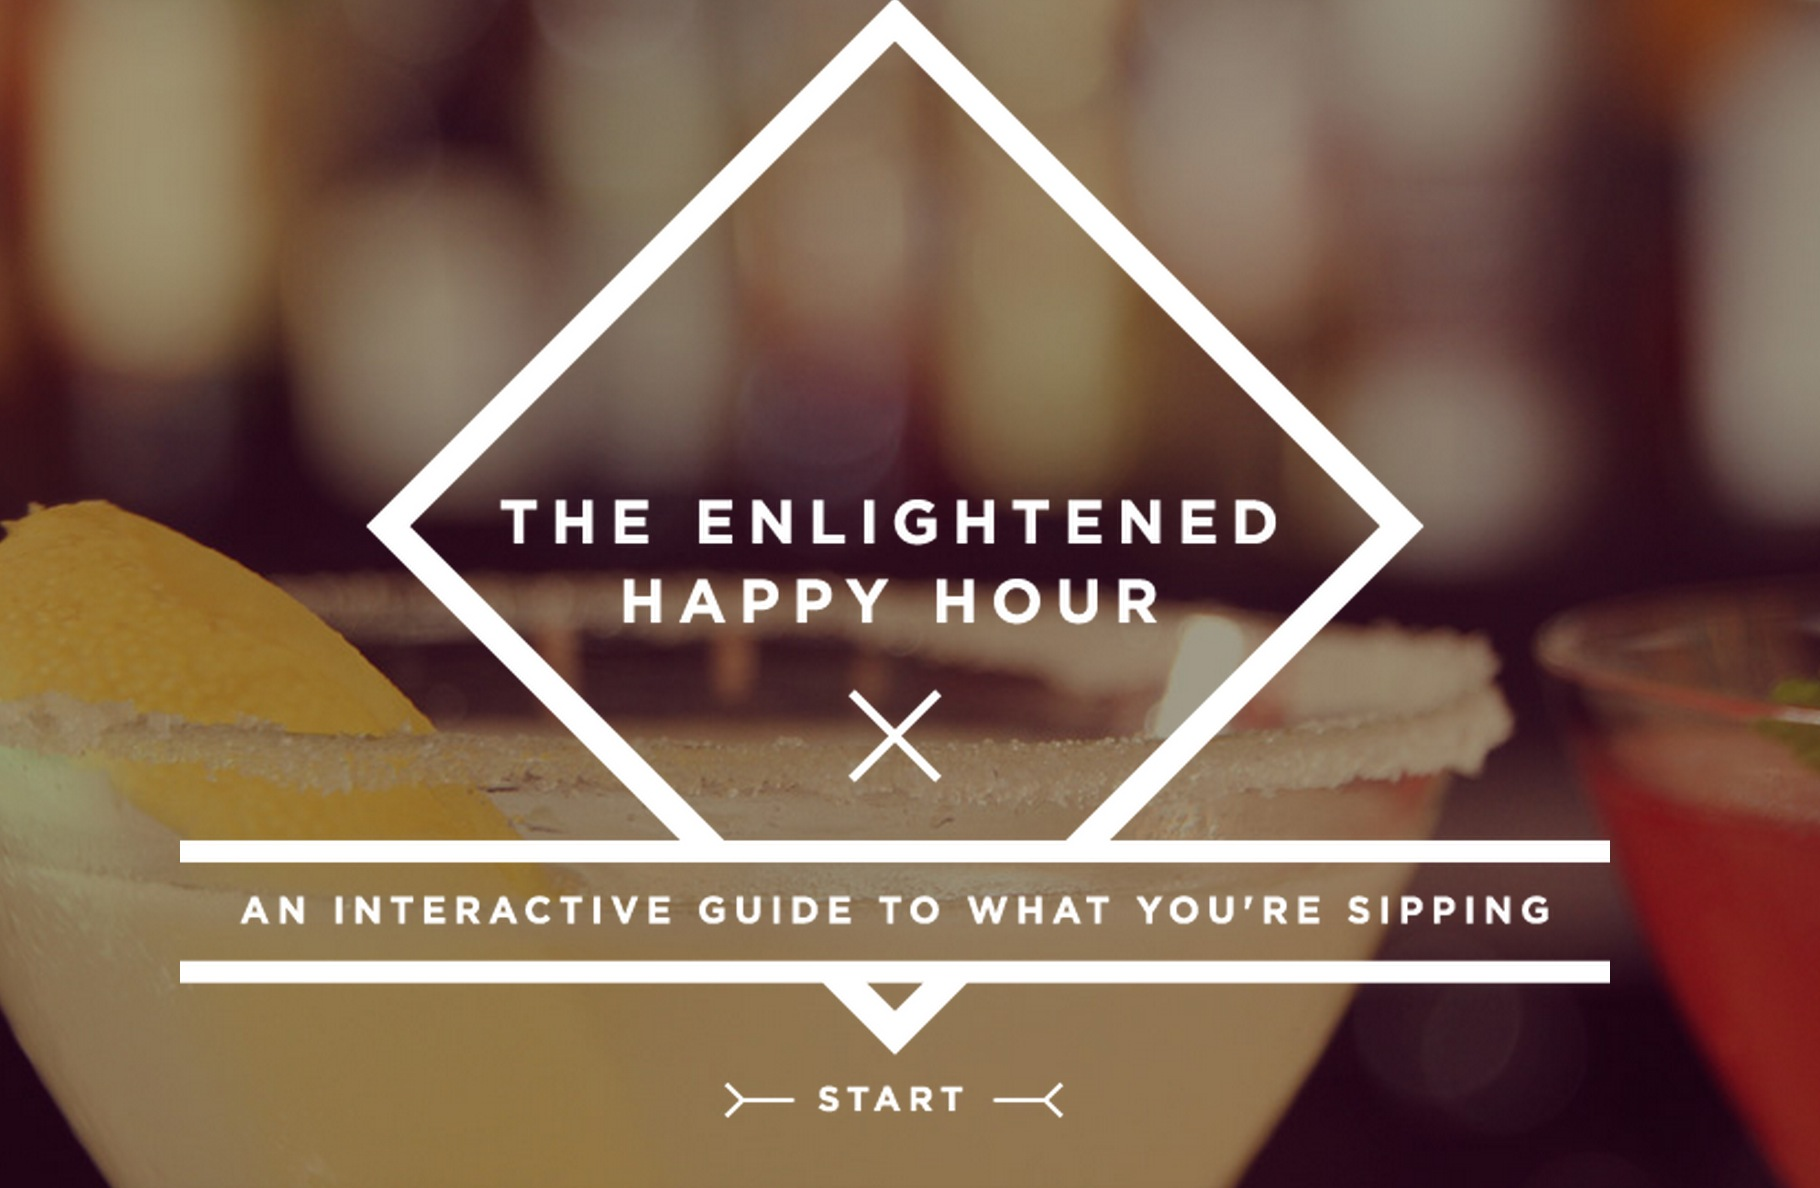 The Enlightened Happy Hour: An Interactive Guide to What You're Sipping